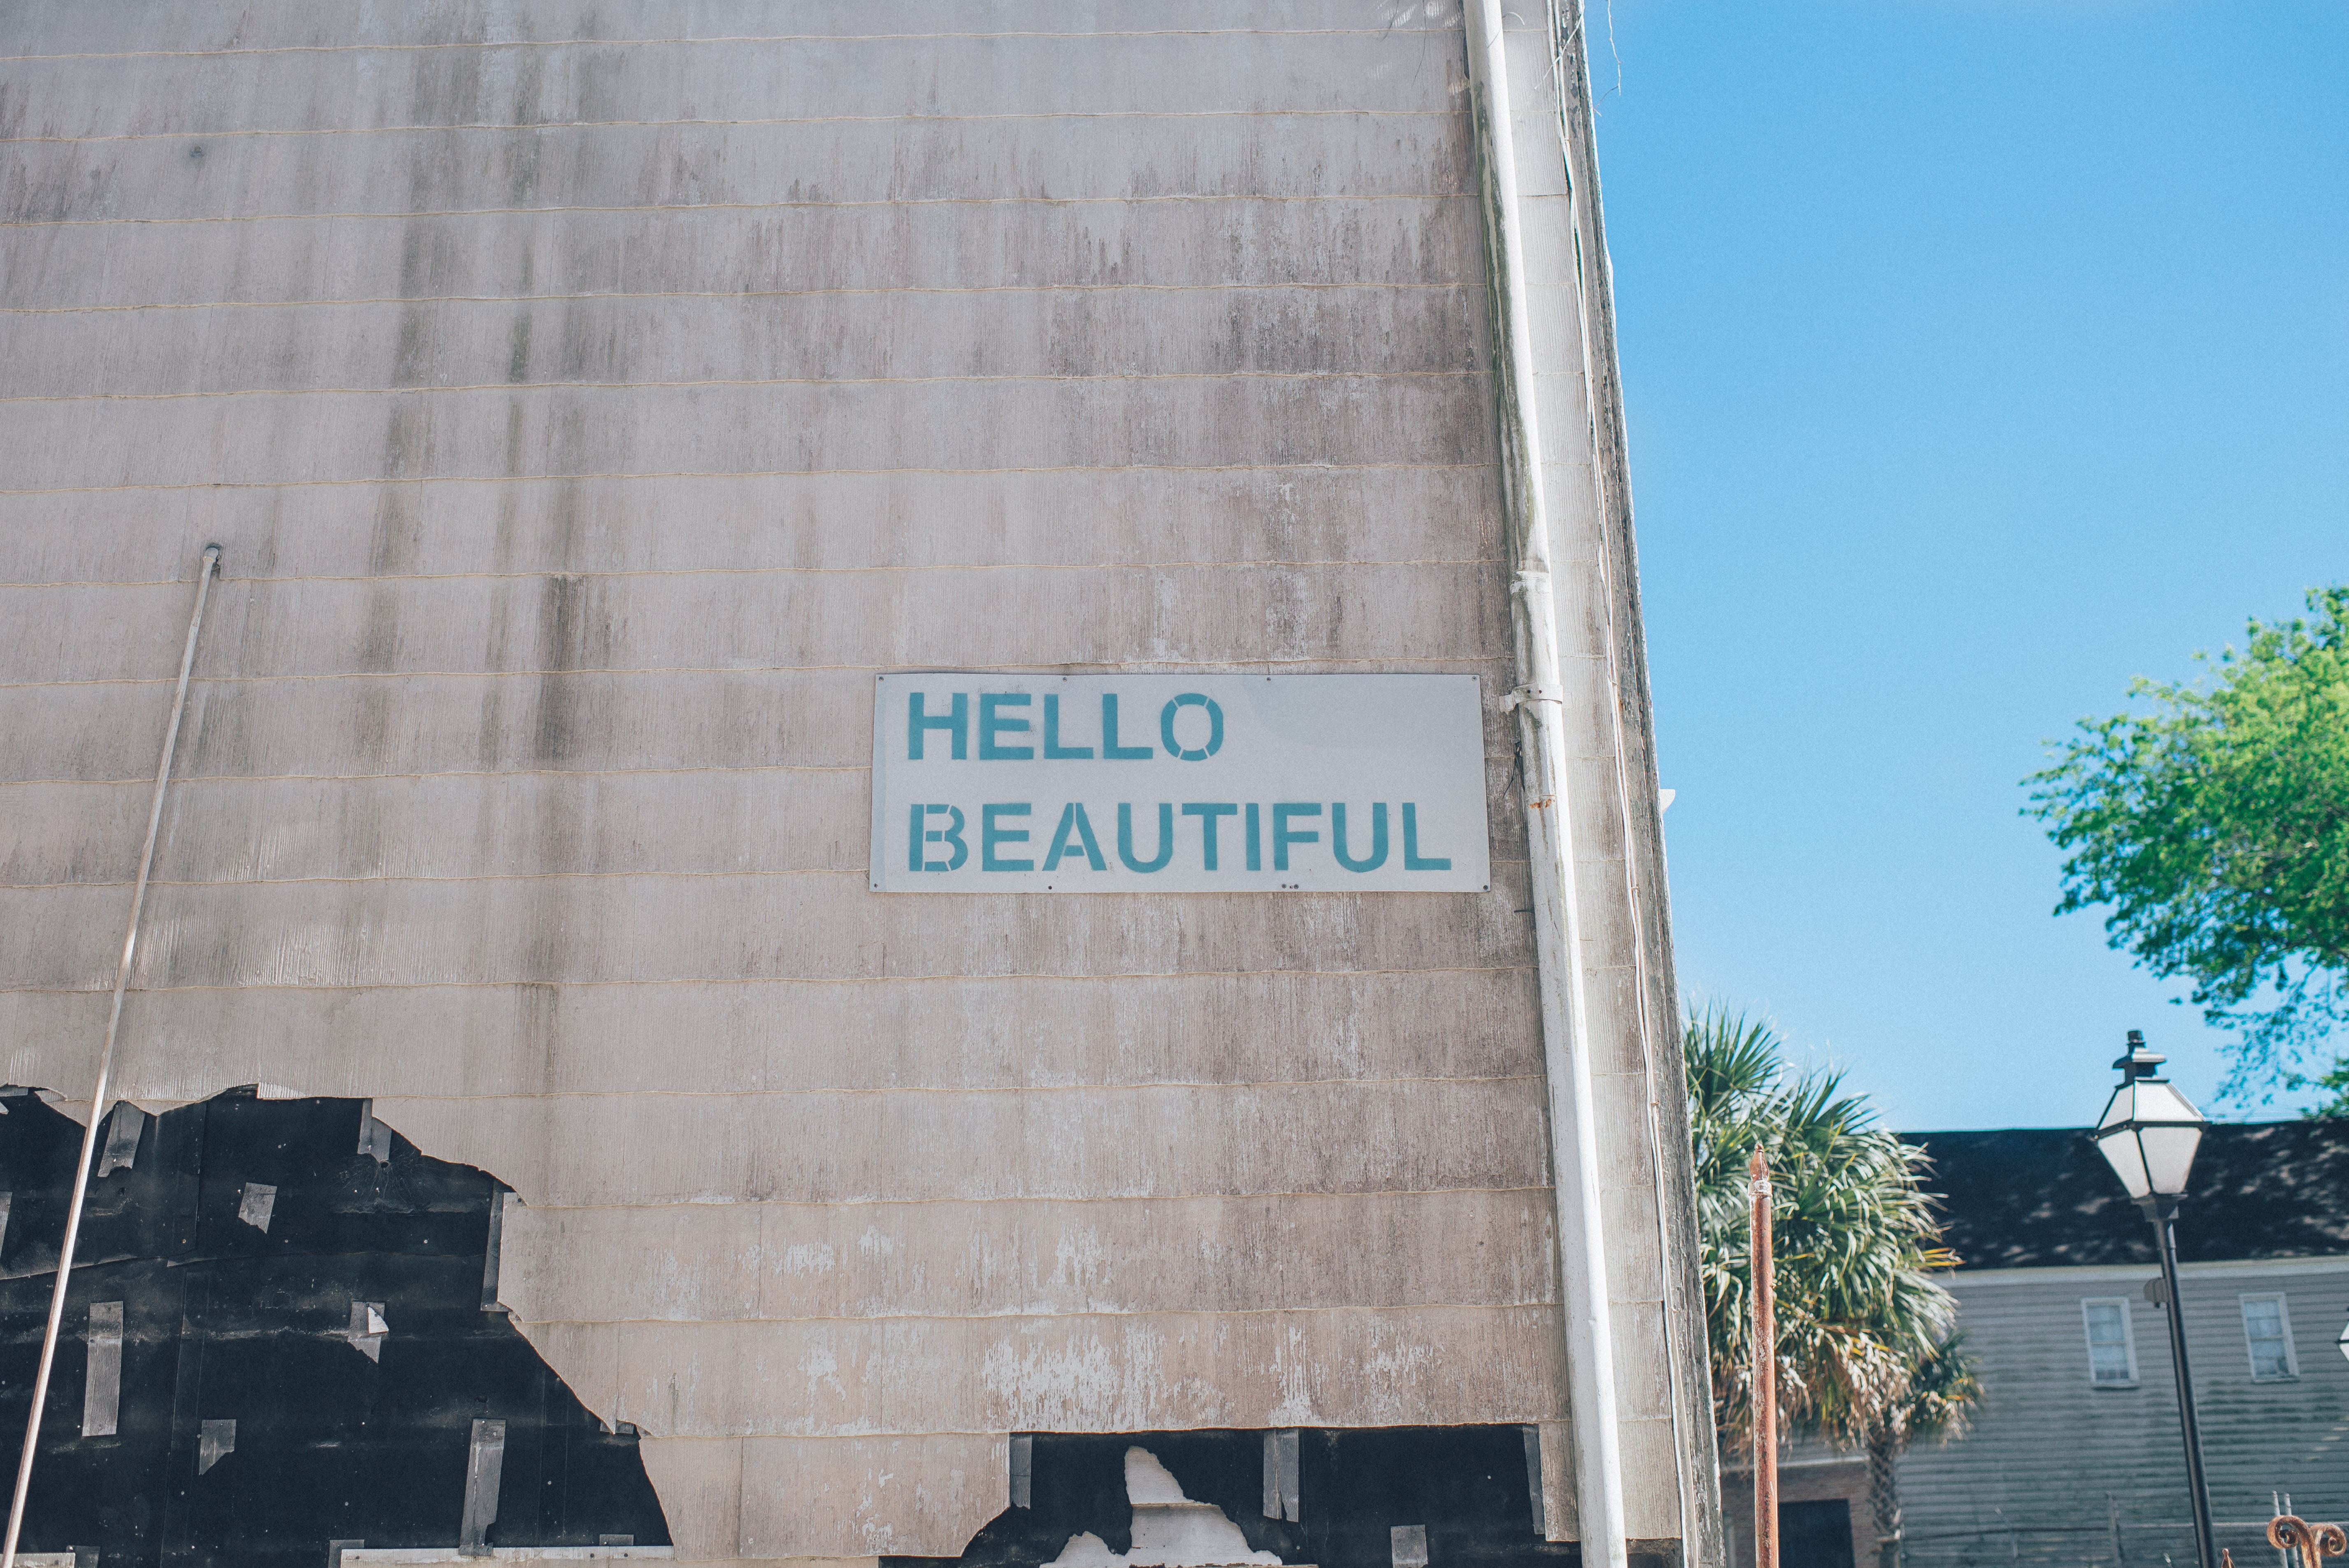 Green hello beautiful sign on urban wall with blue sky in background, Charleston